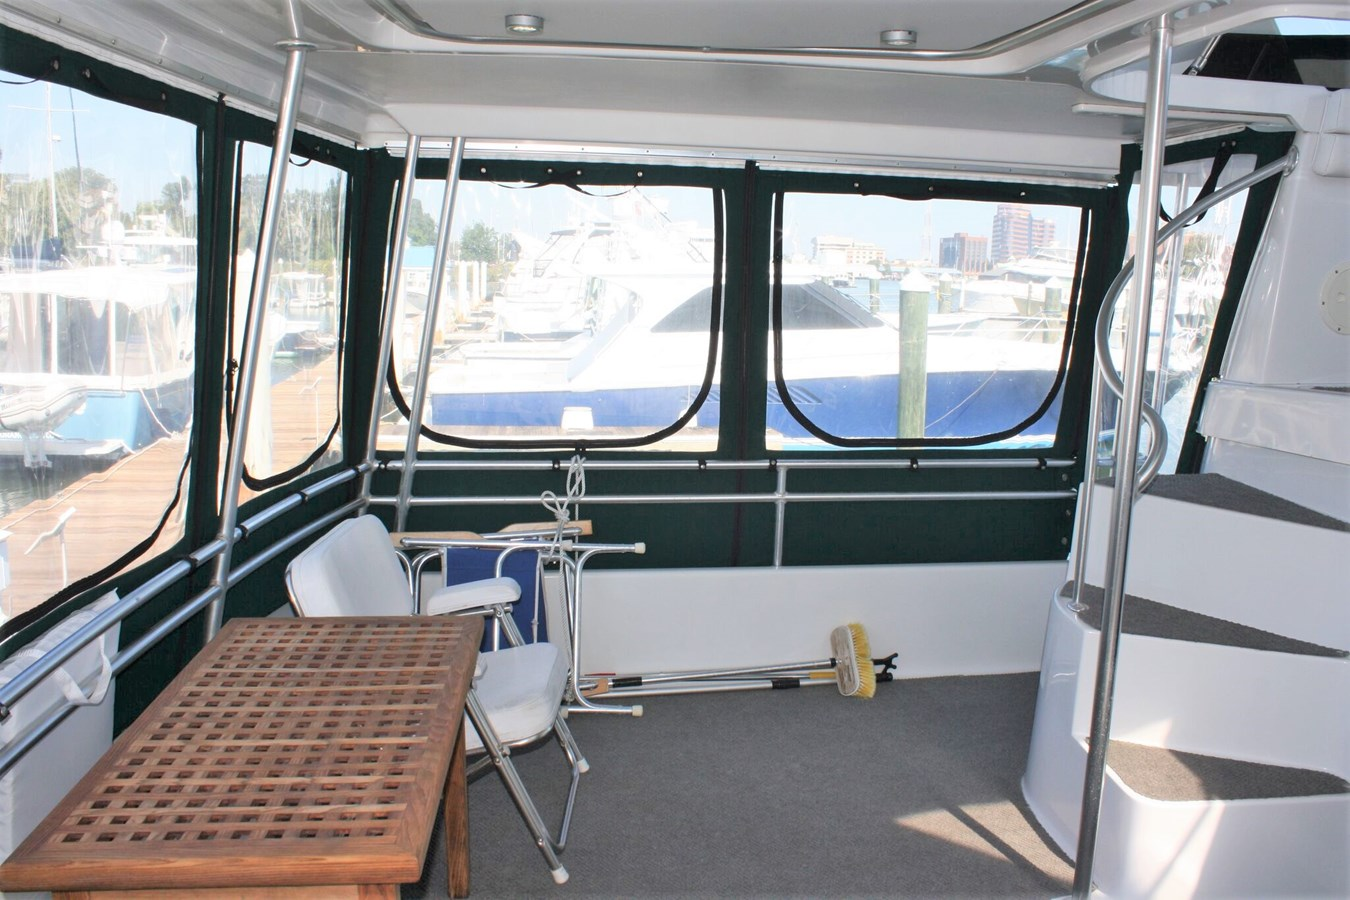 6 - 47 MAINSHIP For Sale